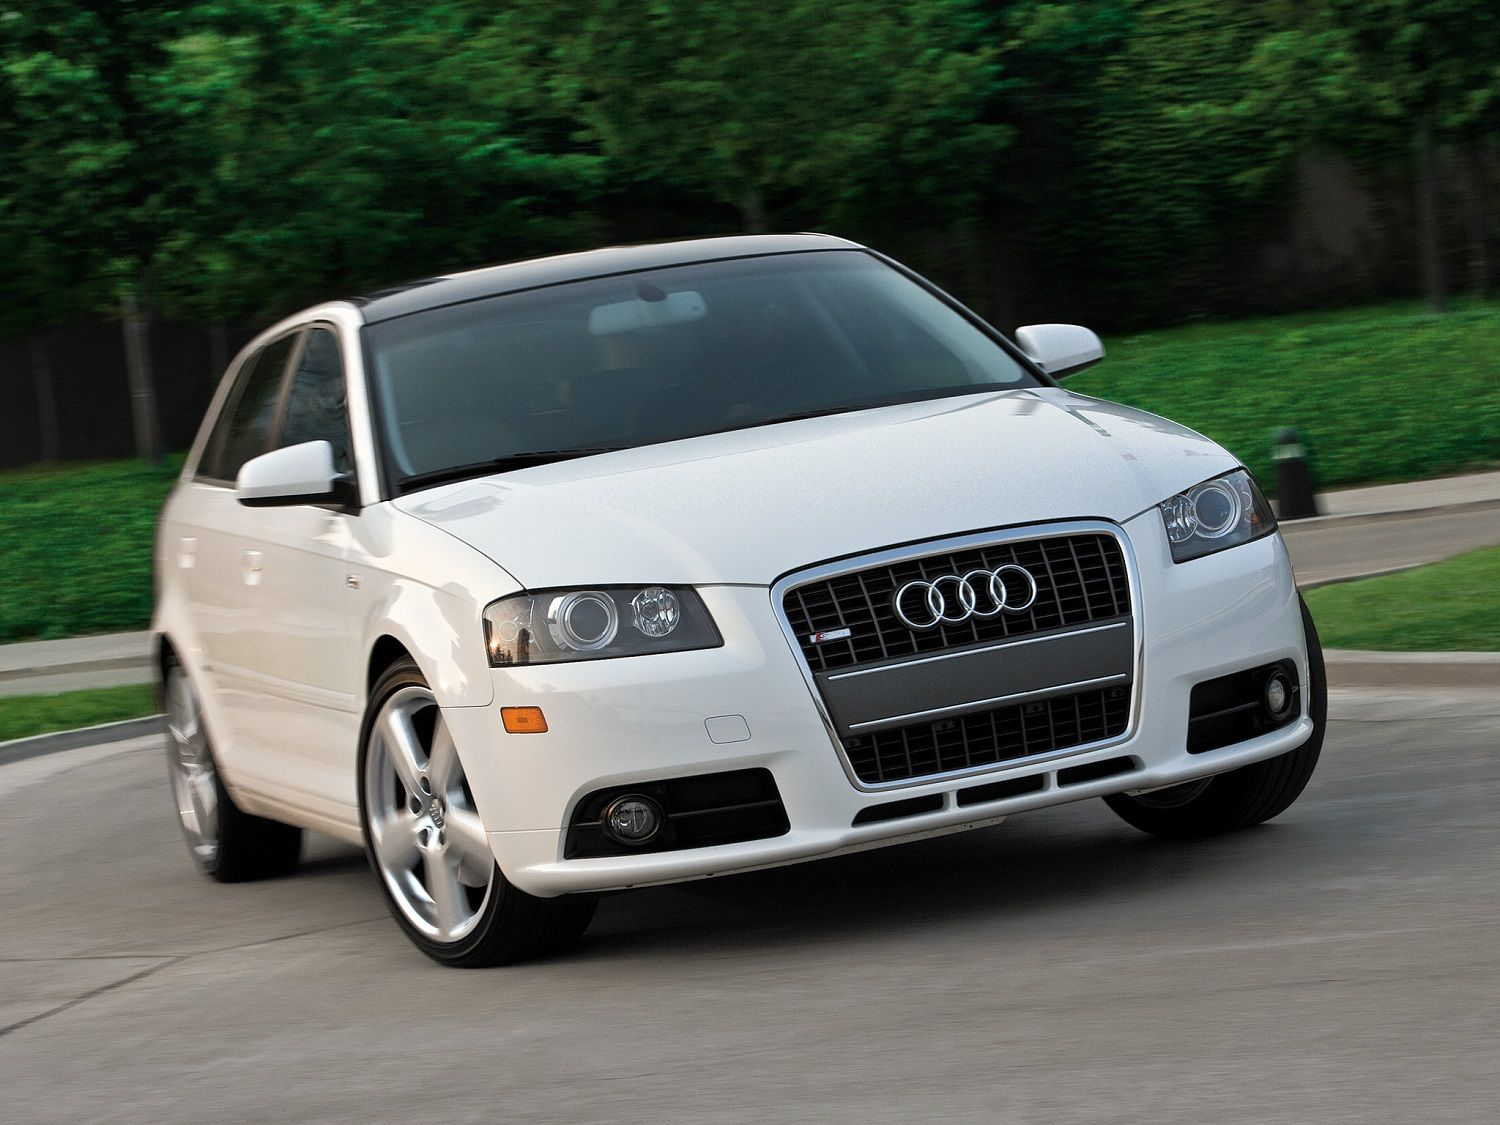 Luxury Cars Under 5K >> Online Source For Best Used Cars Under 5000 Dollars